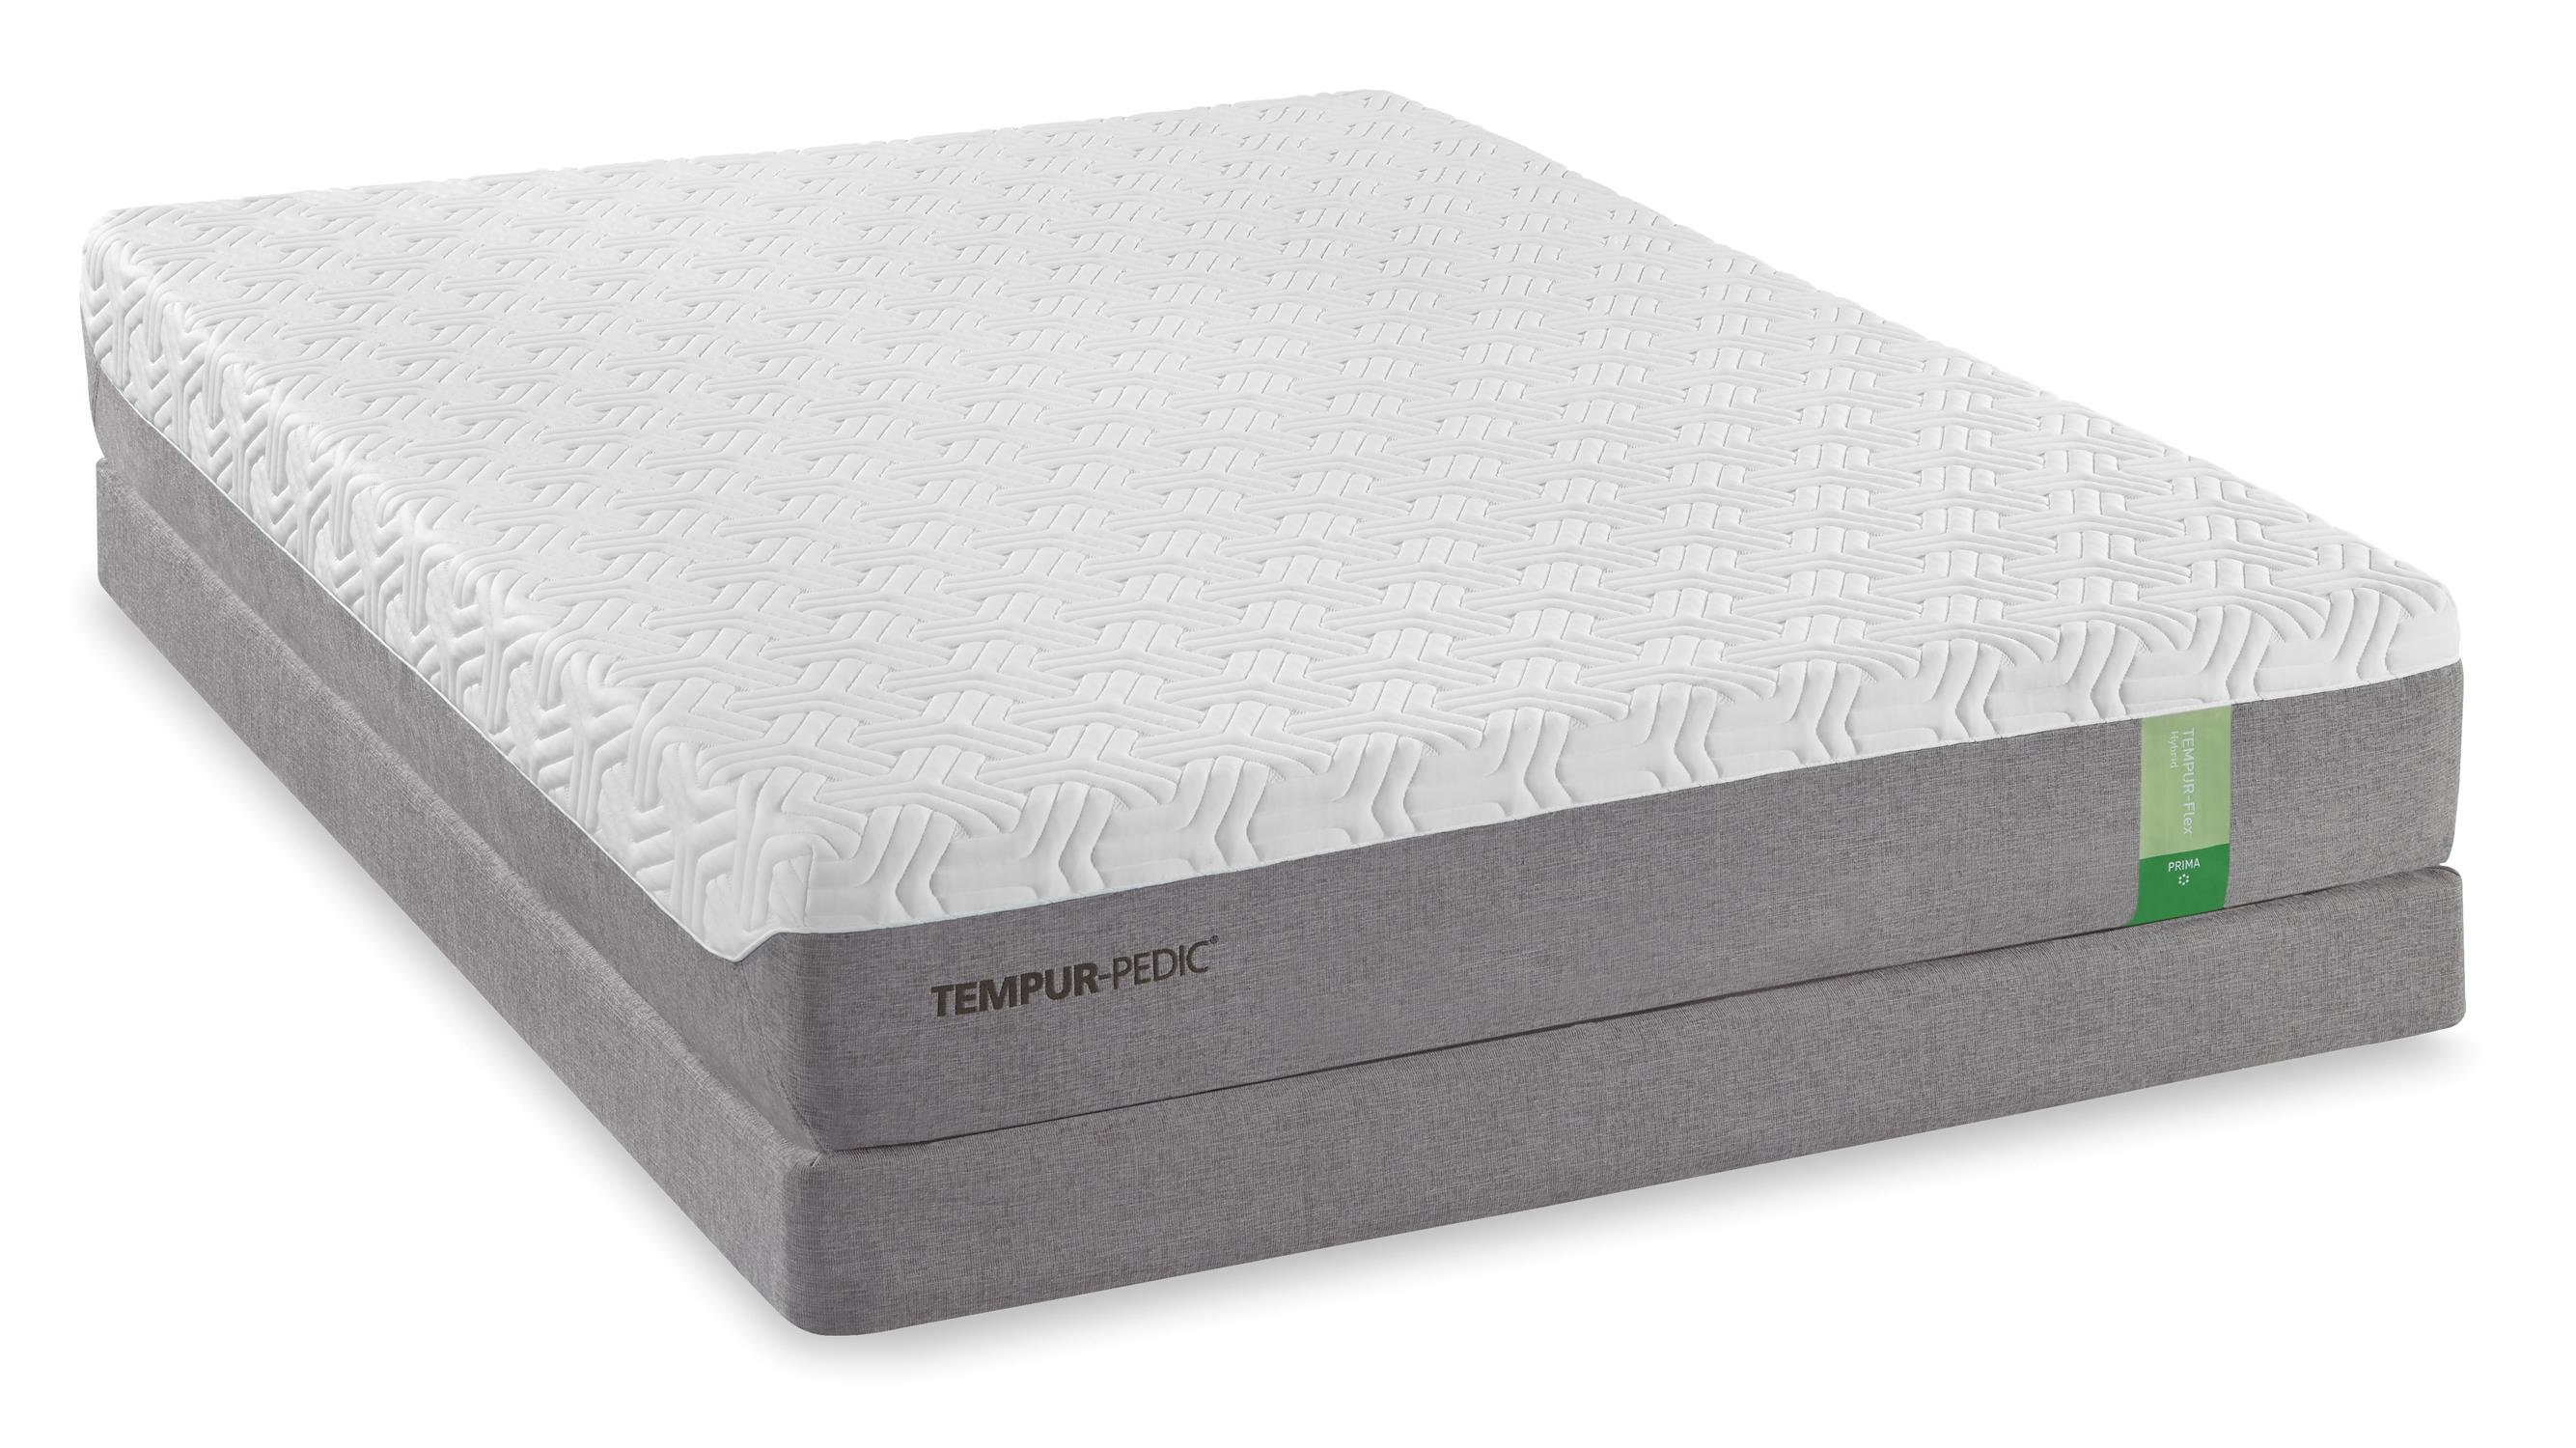 Tempur-Pedic® TEMPUR-Flex Prima Queen Medium Firm Mattress Set - Item Number: 10115250+20510150